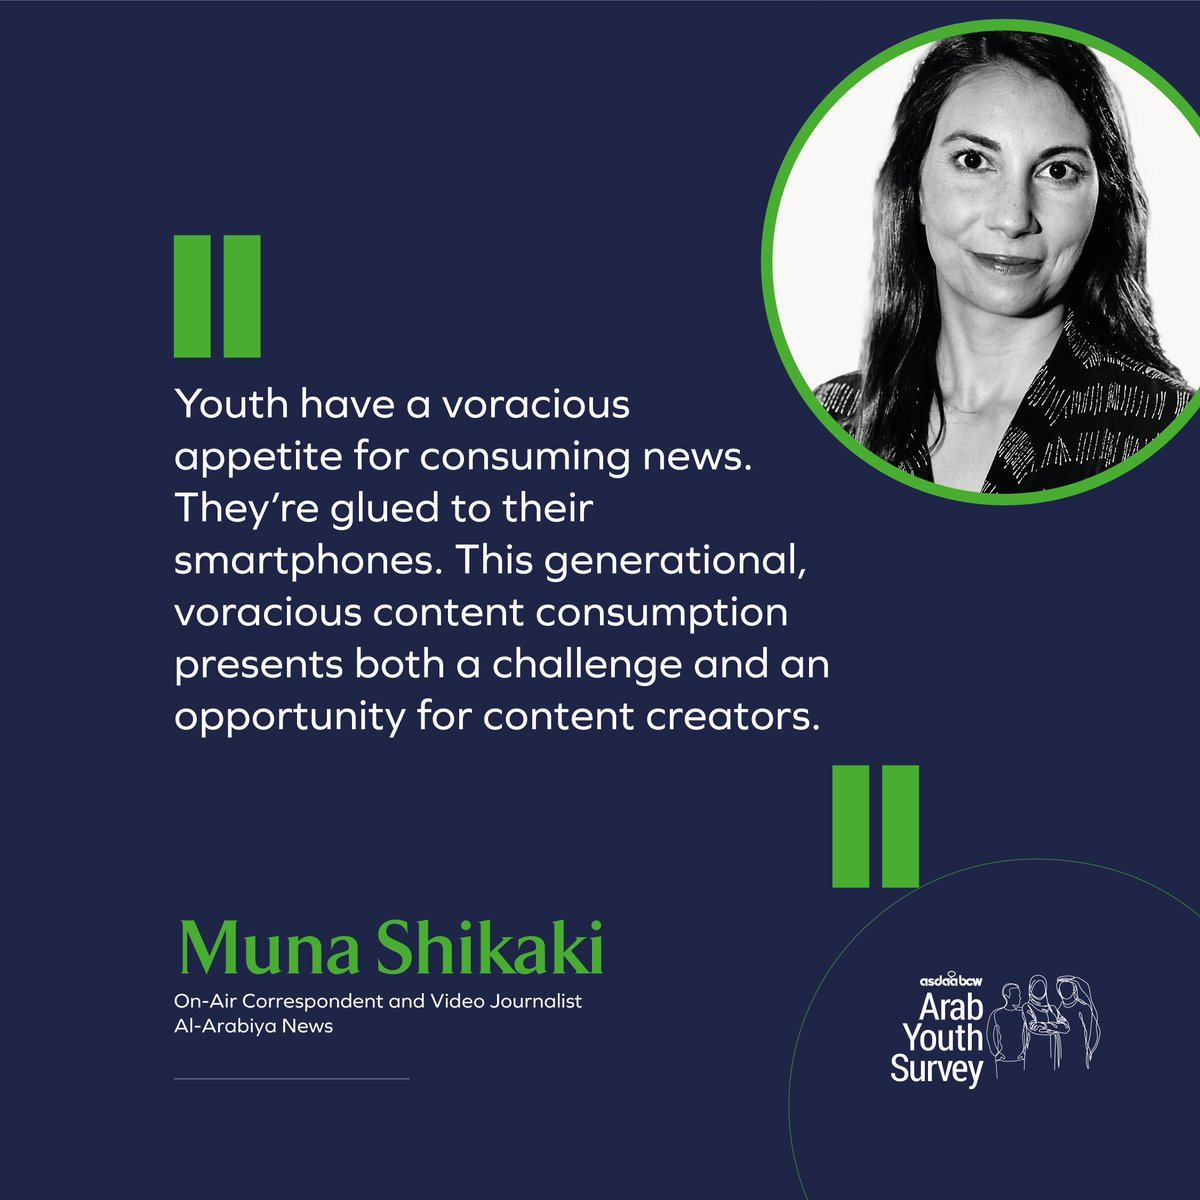 @Munashik , on-air correspondent and video journalist for Al-Arabiya, gives her unique perspective on the digital generation of the 12th Annual @asdaabcw #ArabYouthSurvey. Read her analysis by downloading the whitepaper at bit.ly/358JdlR